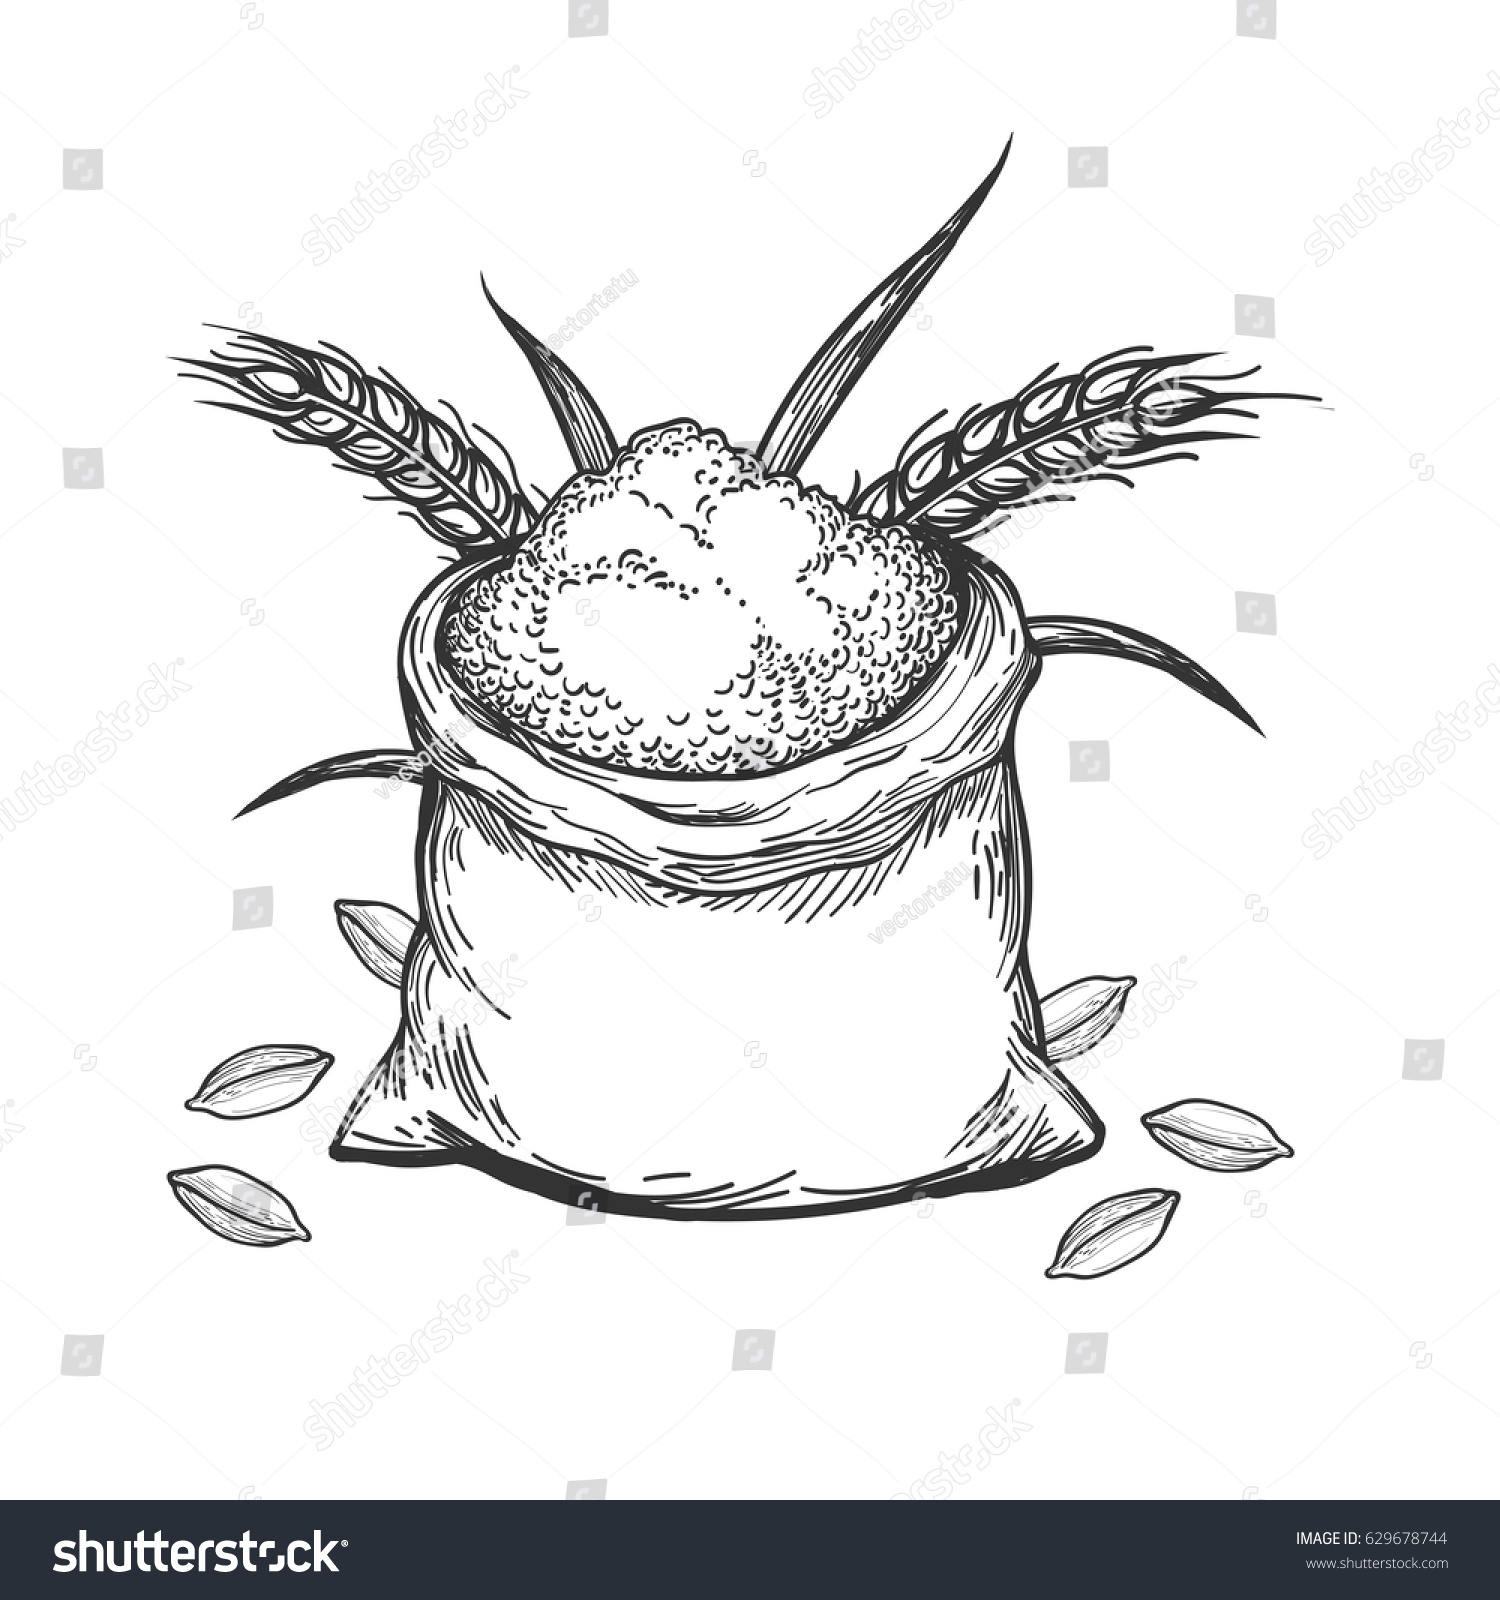 Hand Sketched Whole Bag Wheat Flour Stock Vector 629678744 ...